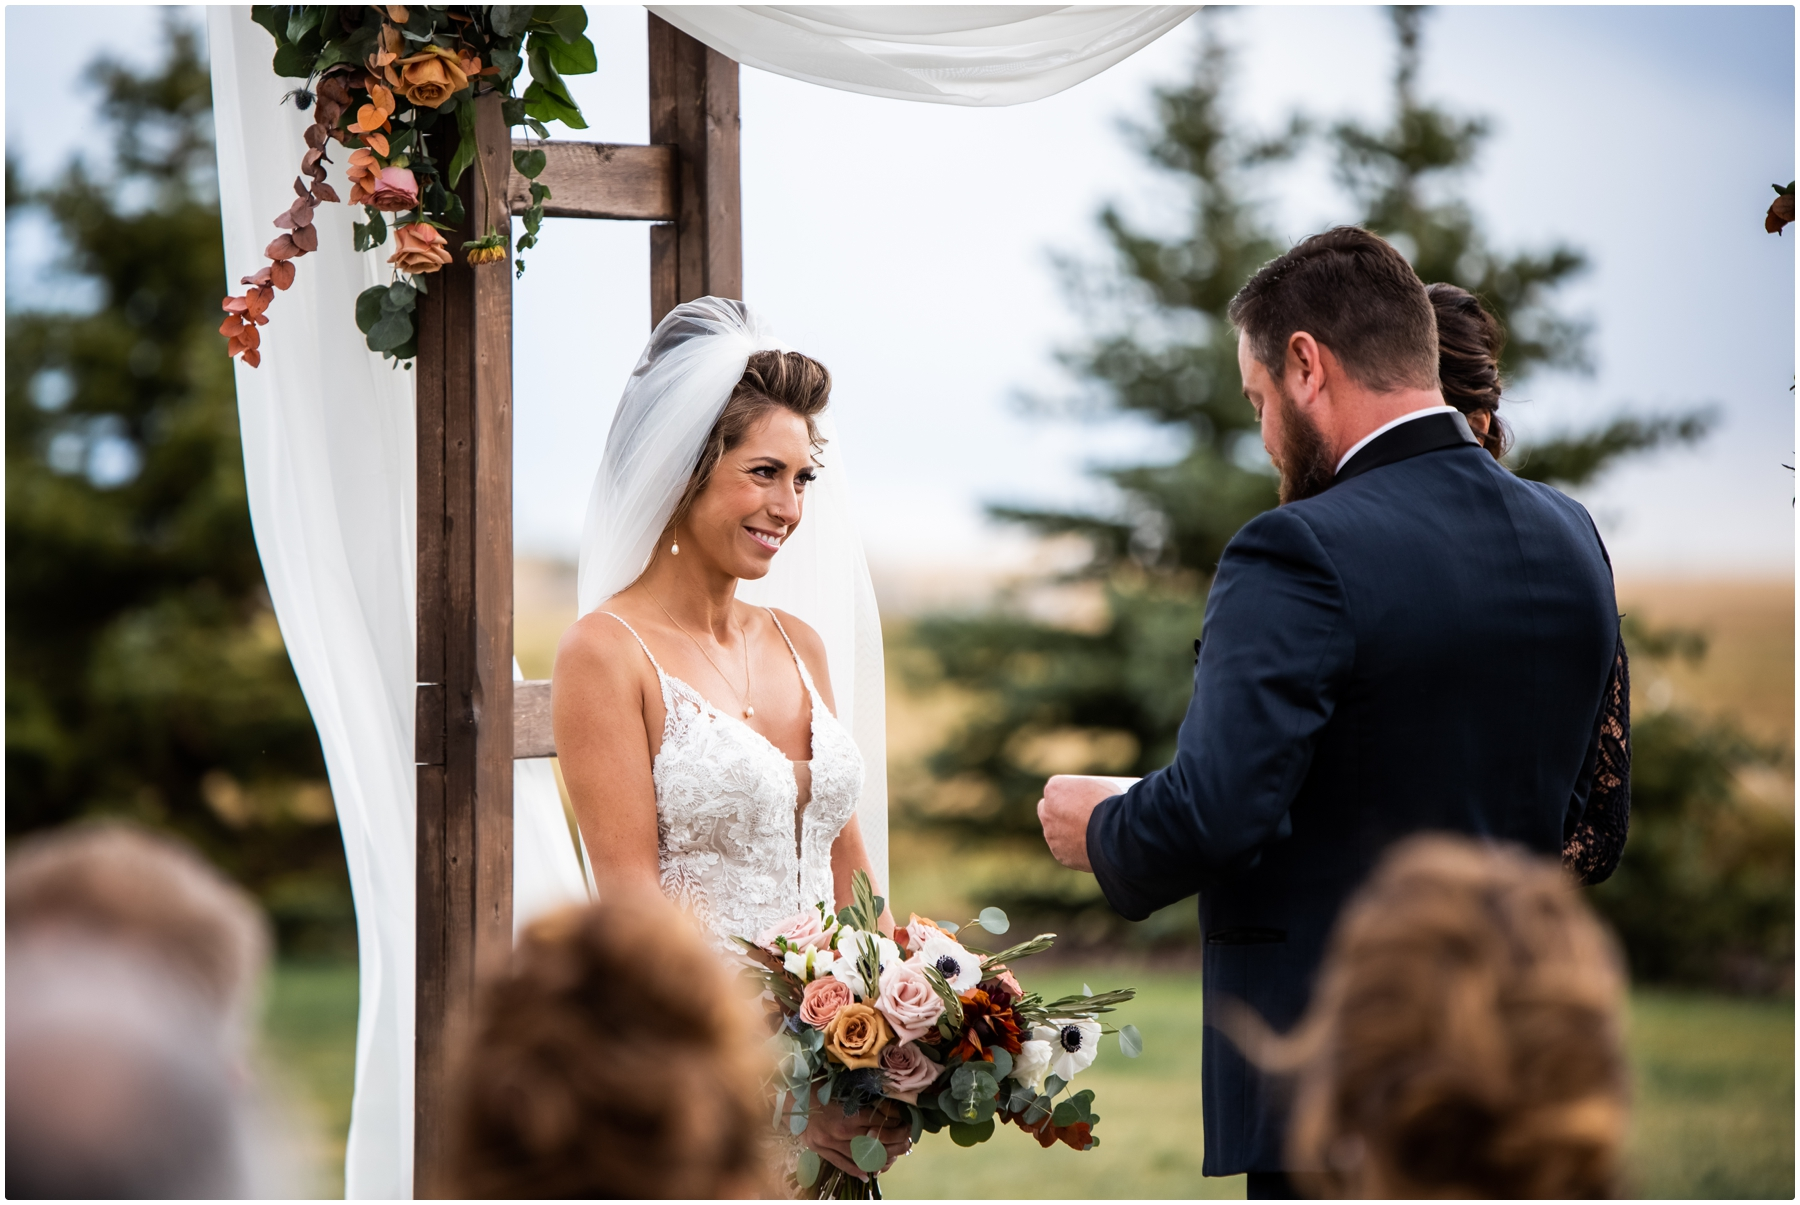 Outdoor Barn Wedding Ceremony Photographer- Sweet Haven Barn